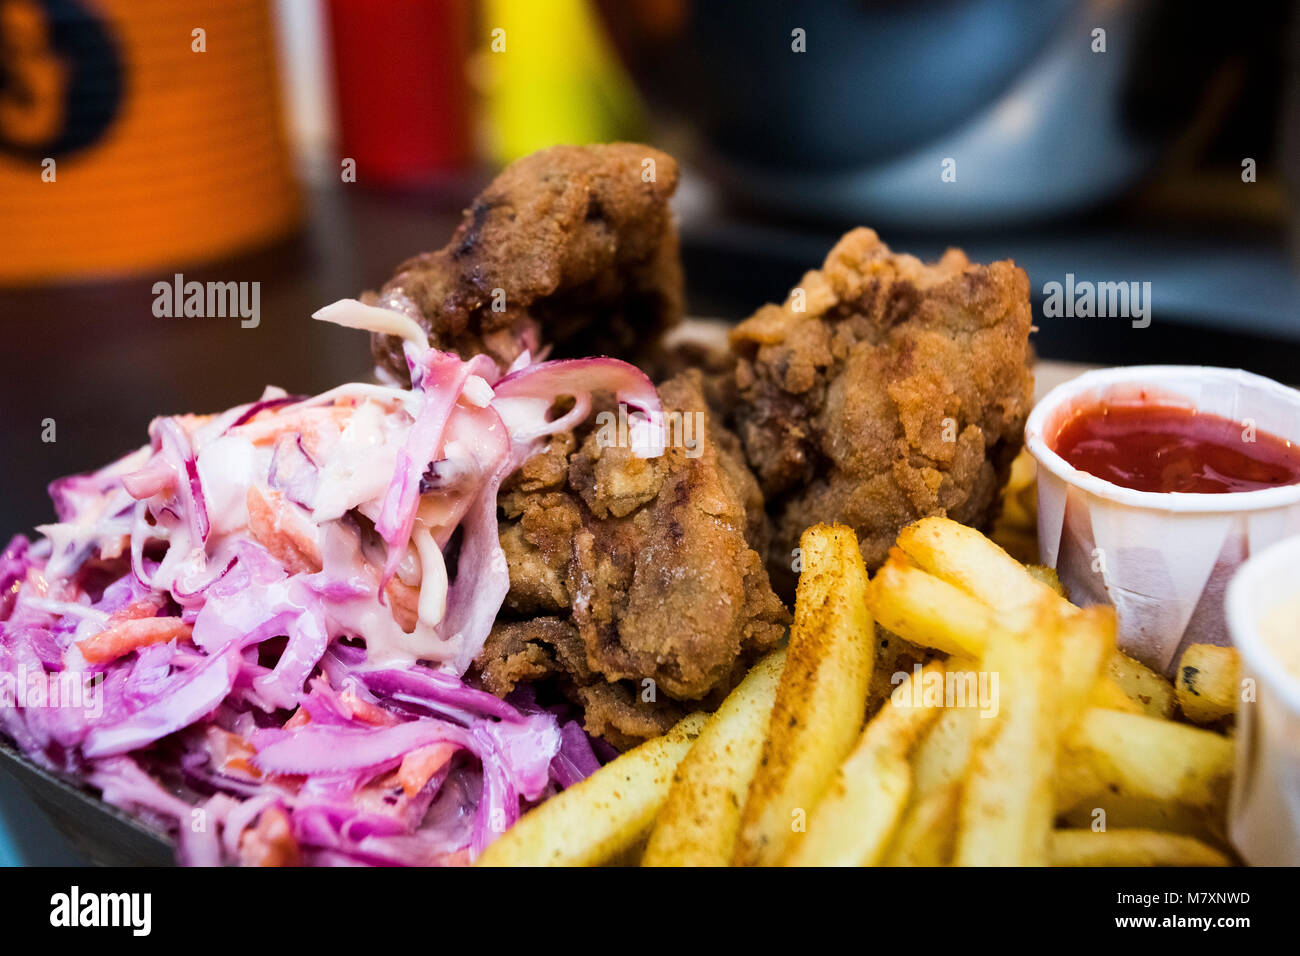 Fried chicken and chips with coleslaw, dipped in mayonnaise with ketchup by man with tattoos.  Hipster street food. - Stock Image